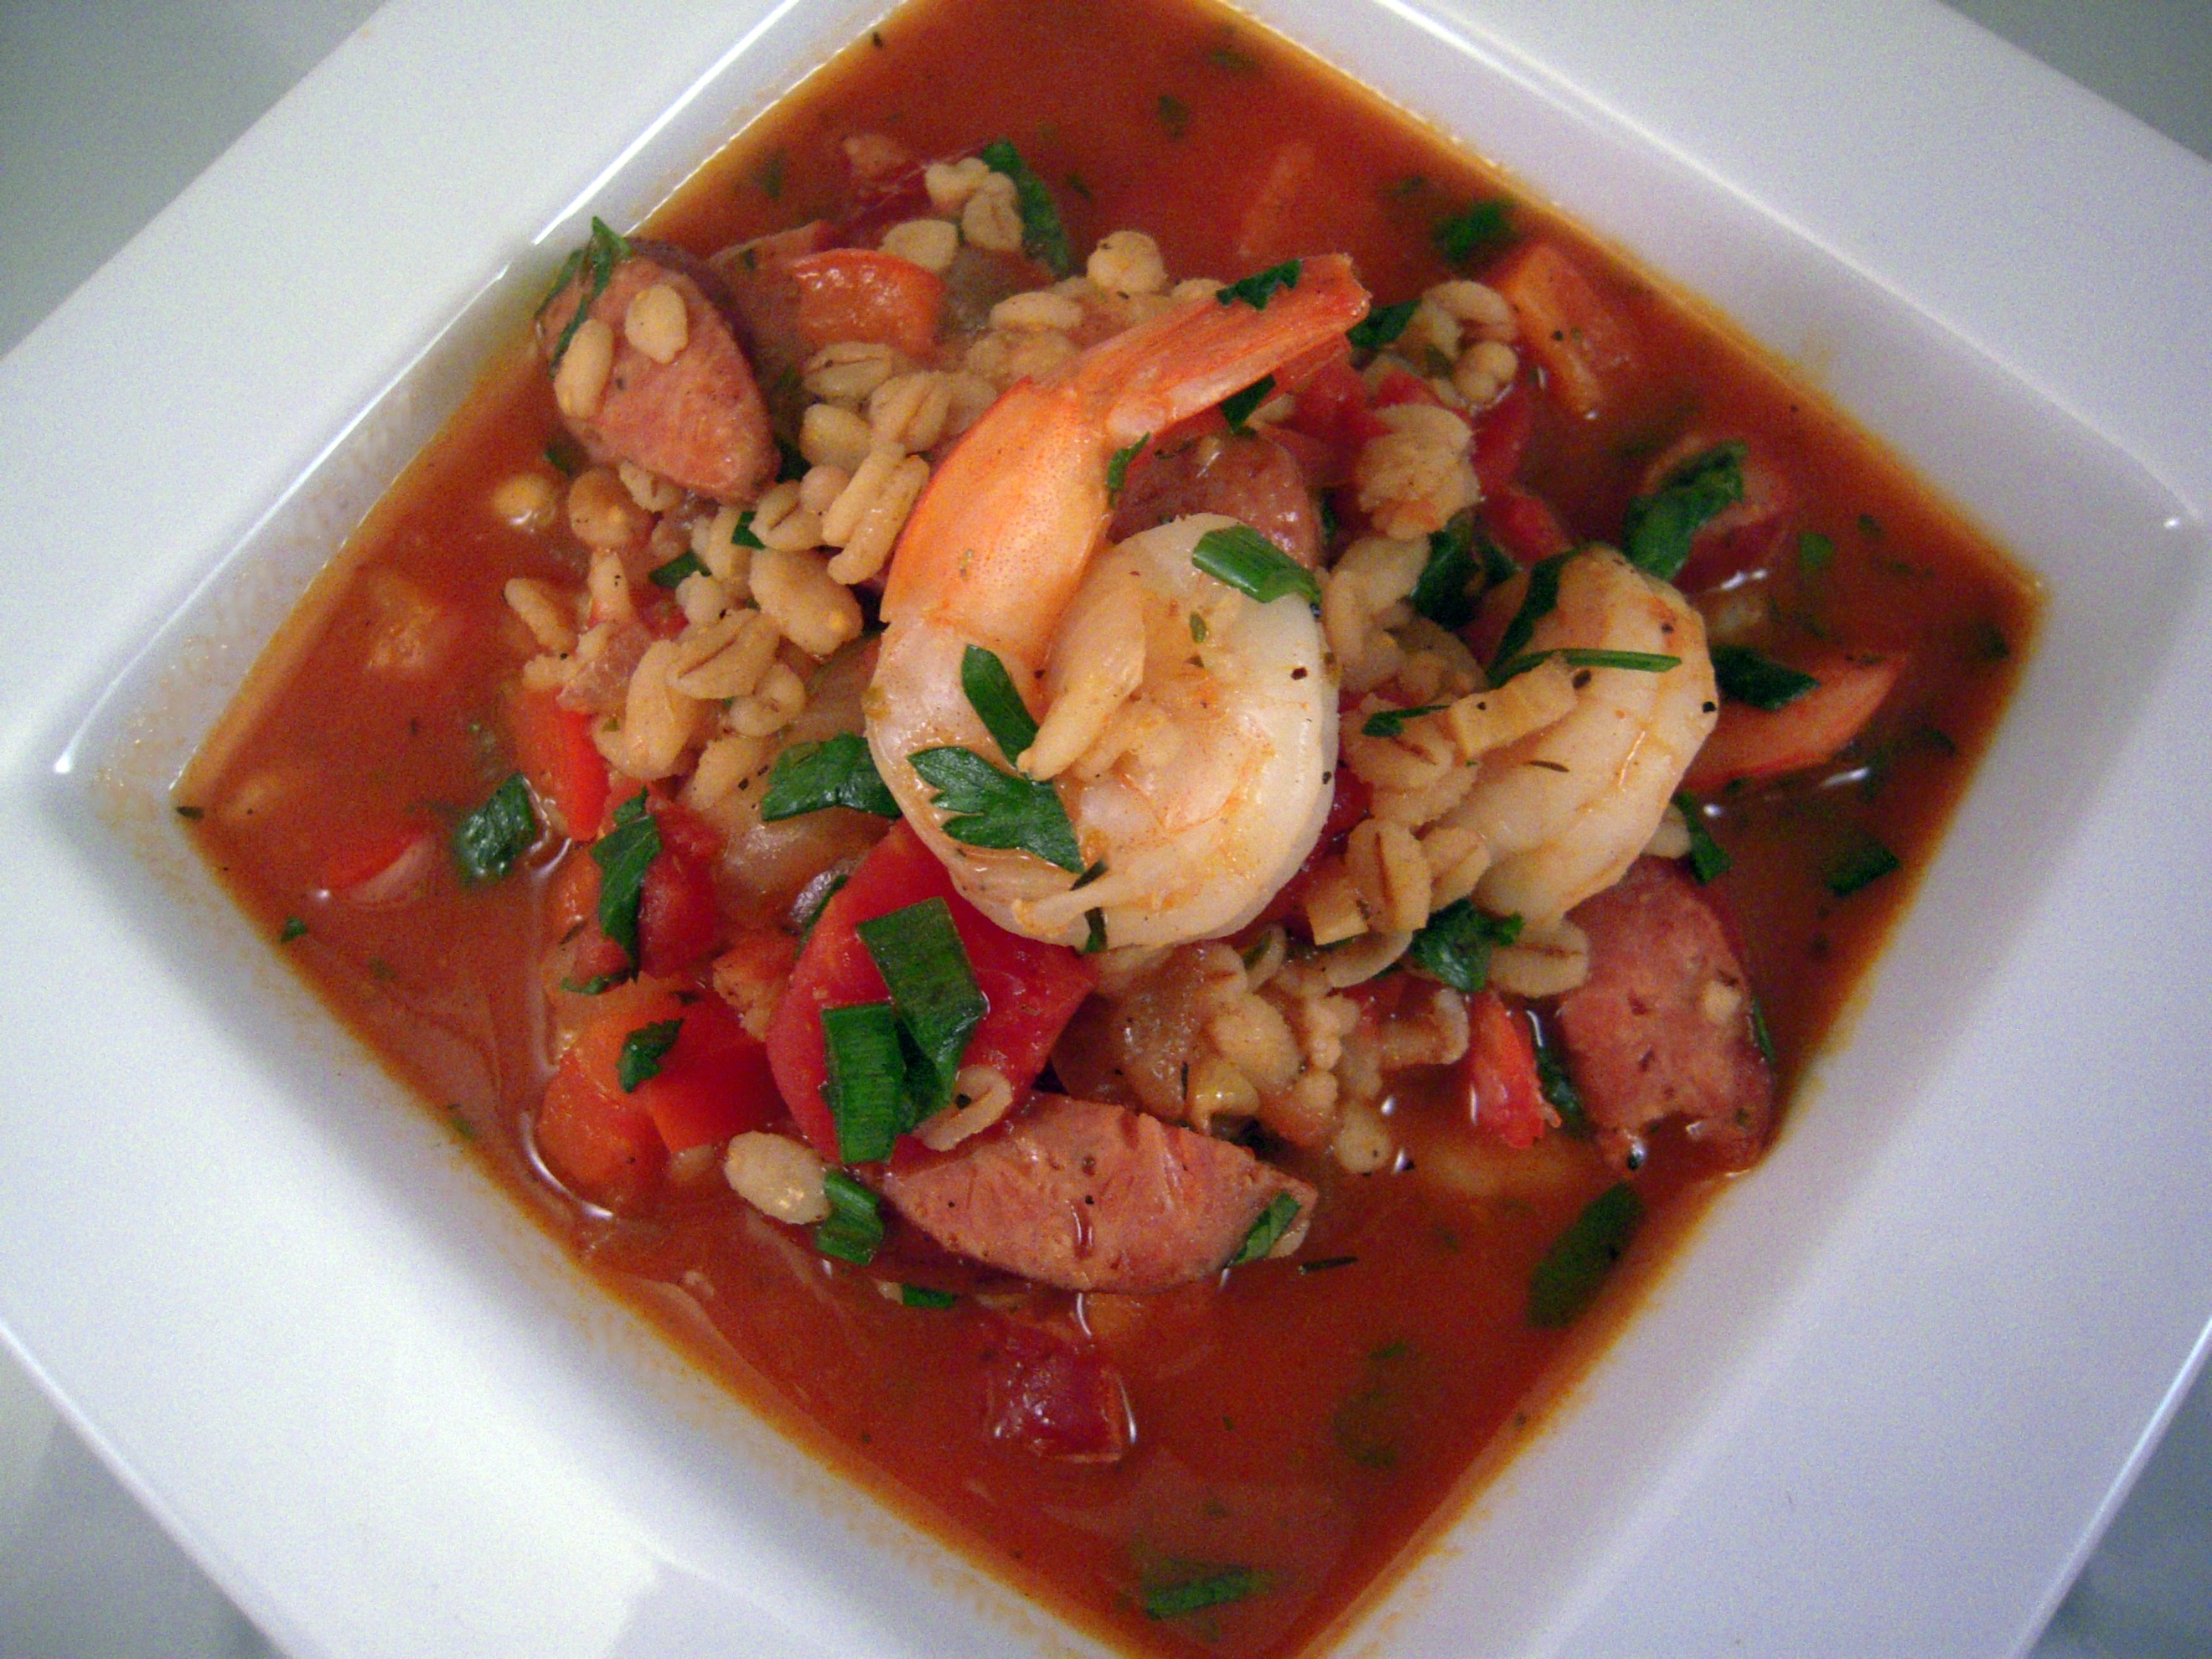 Smokey Shrimp and Sausage Soup with Barley